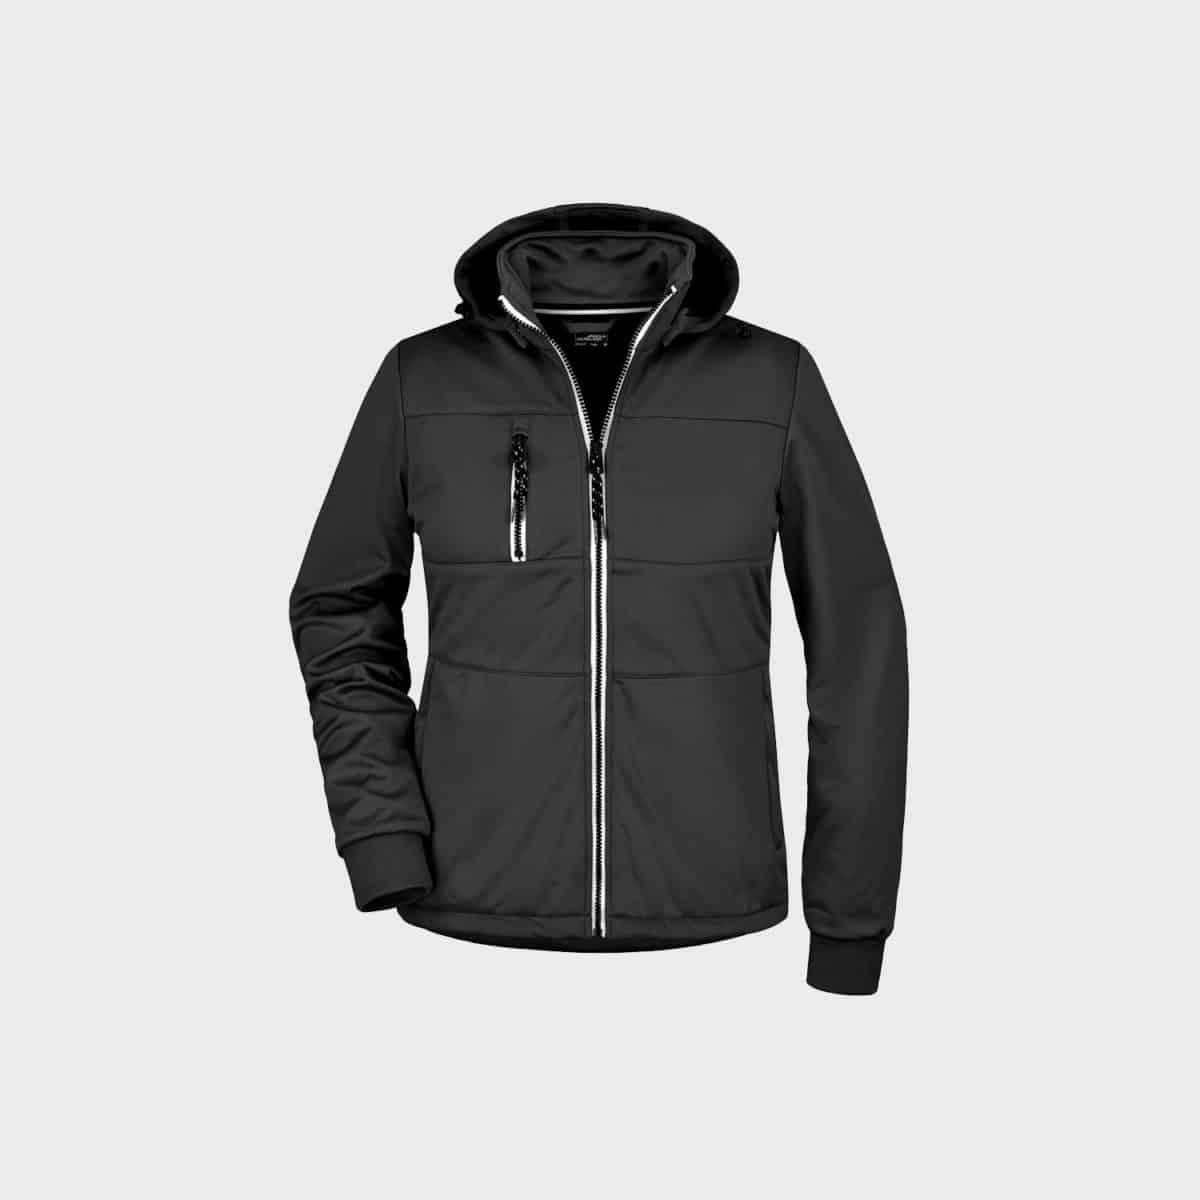 funktionsjacke-maritim-damen-black-kaufen-besticken_stickmanufaktur